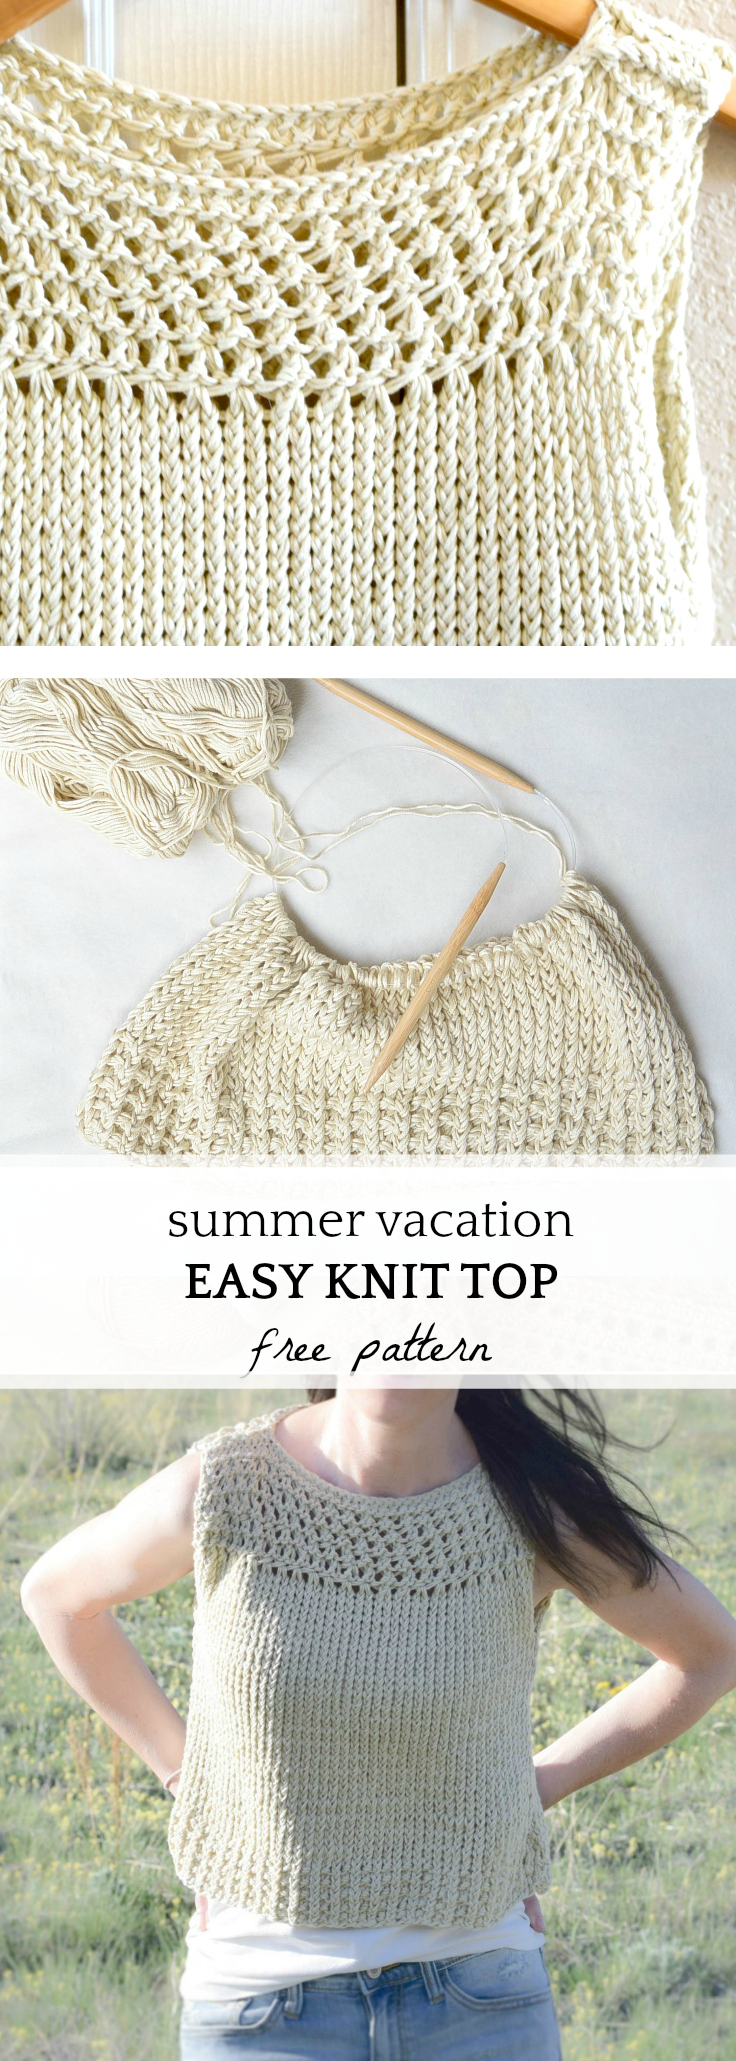 Free Knitted Top Patterns Summer Vacation Knit Top Pattern Mama In A Stitch